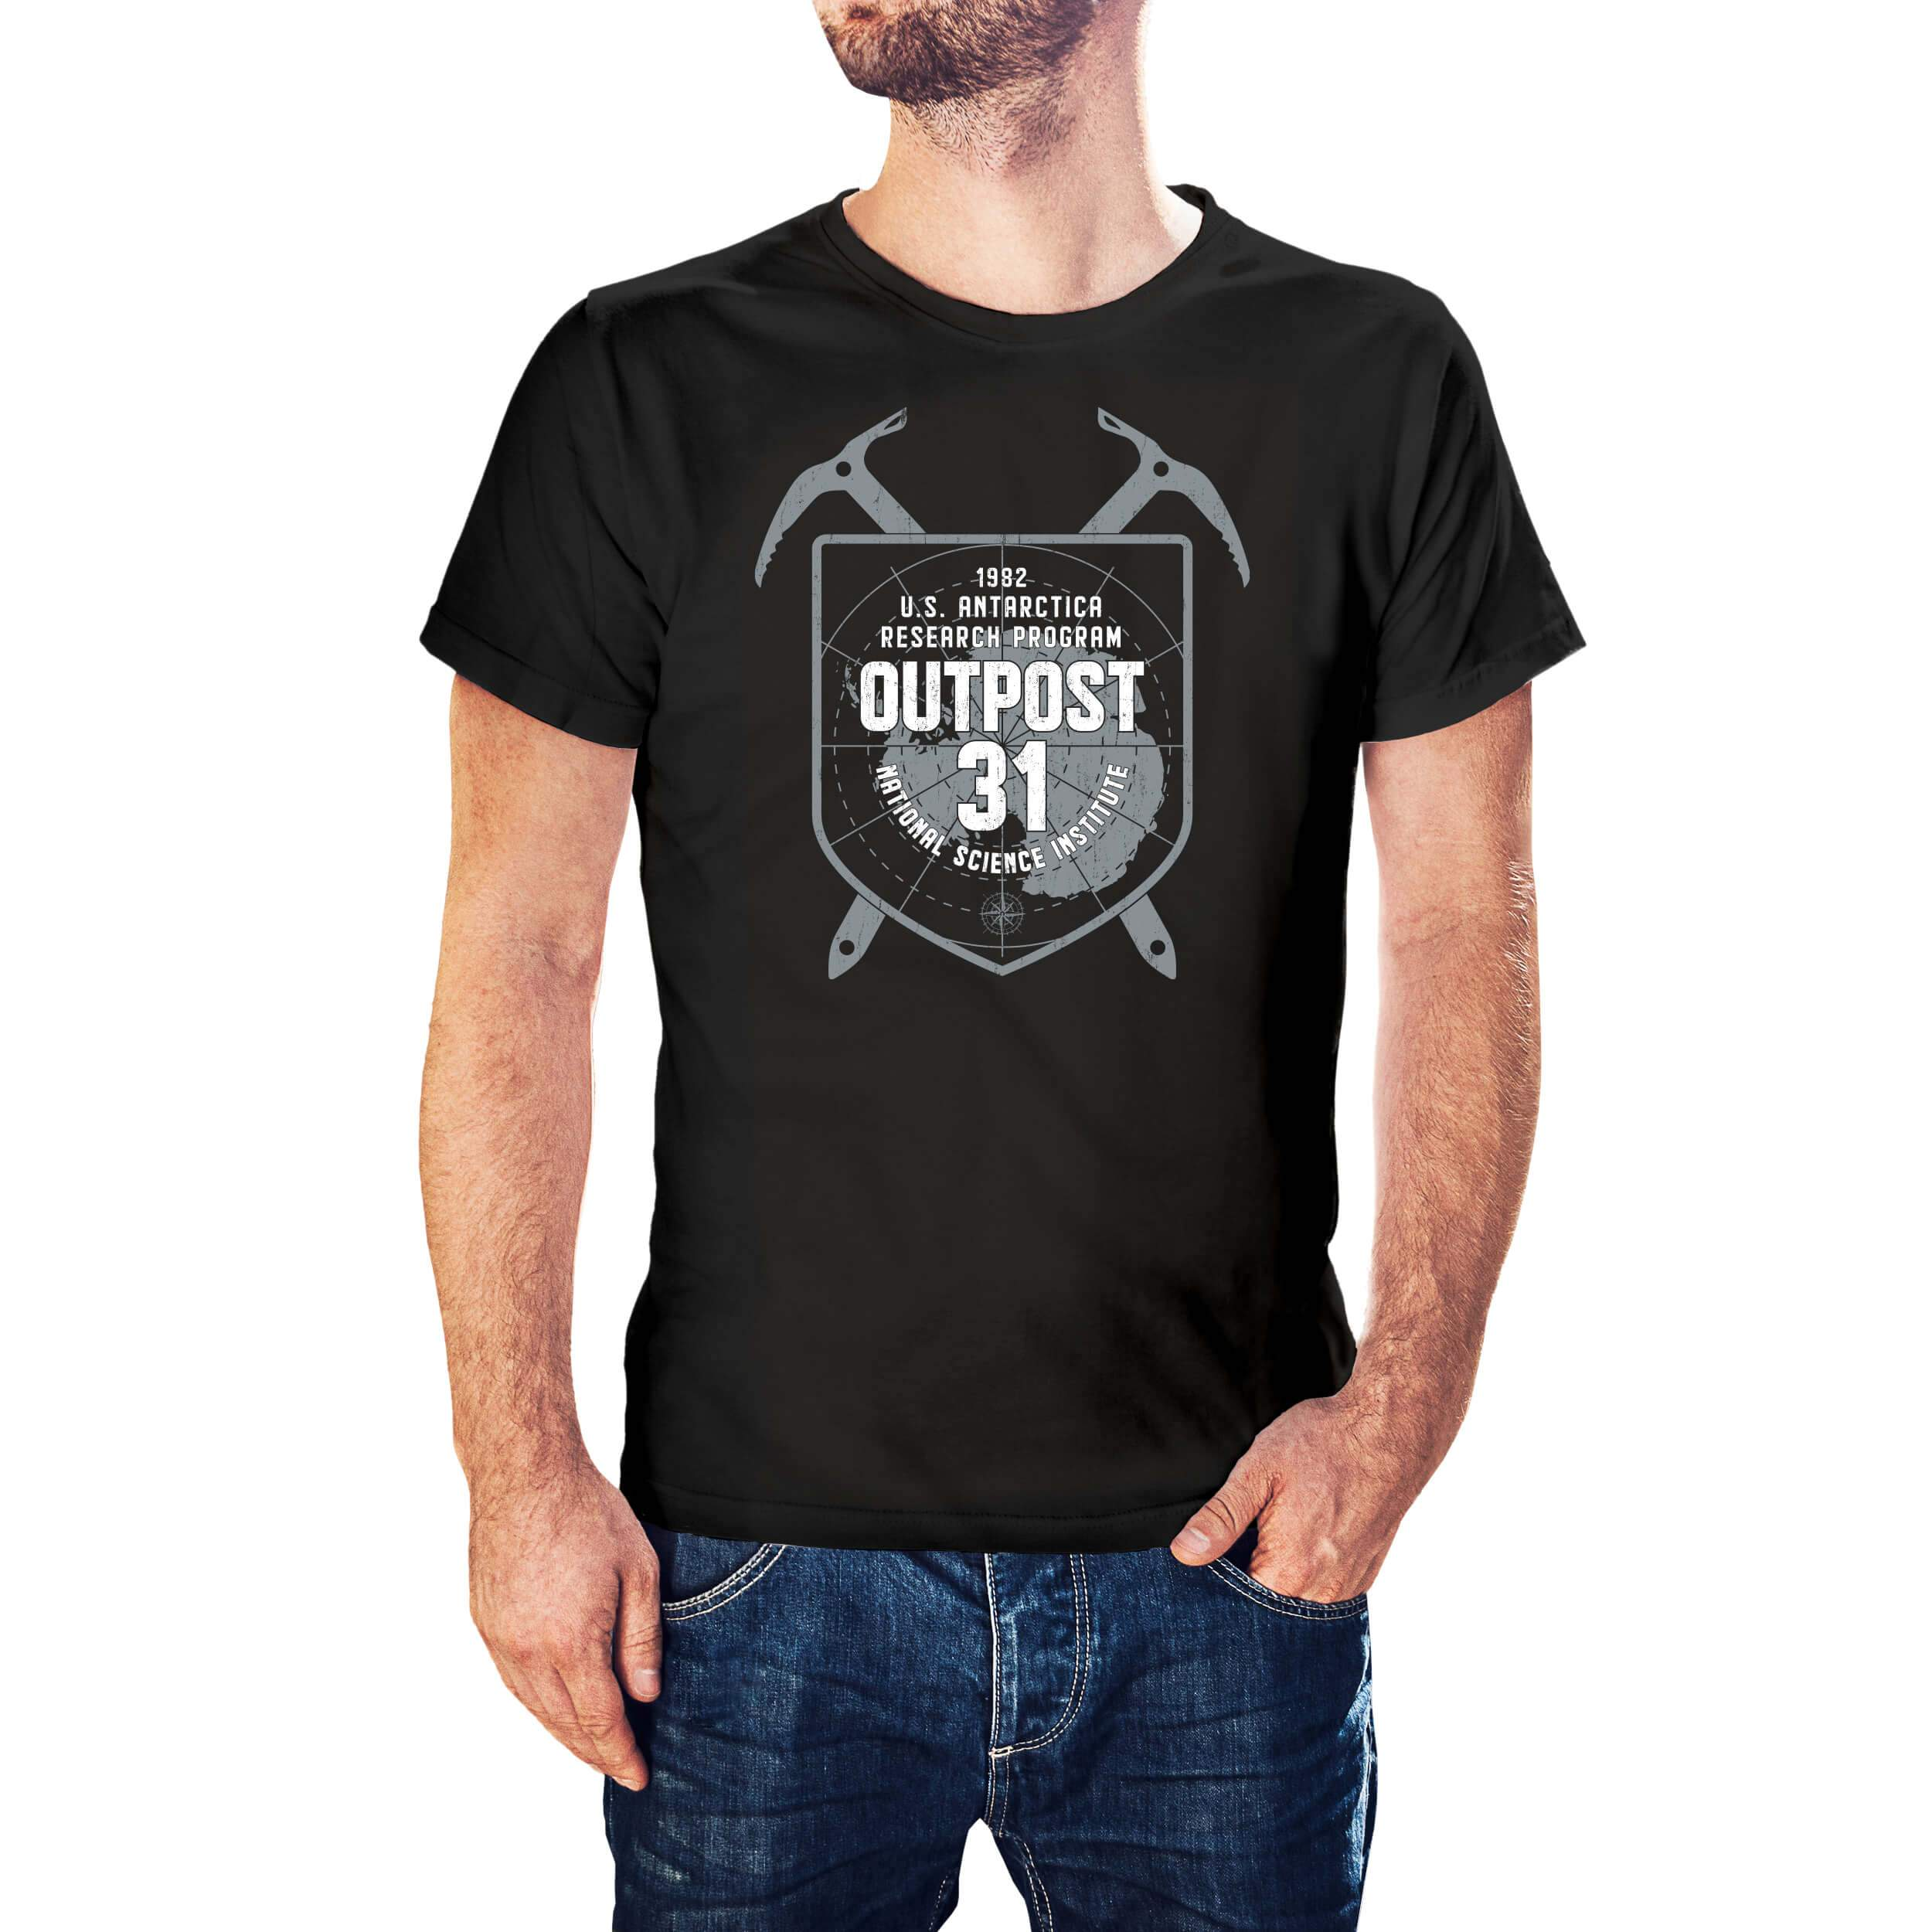 John Carpenter's The Thing Inspired Outpost 31 T-Shirt - Postees